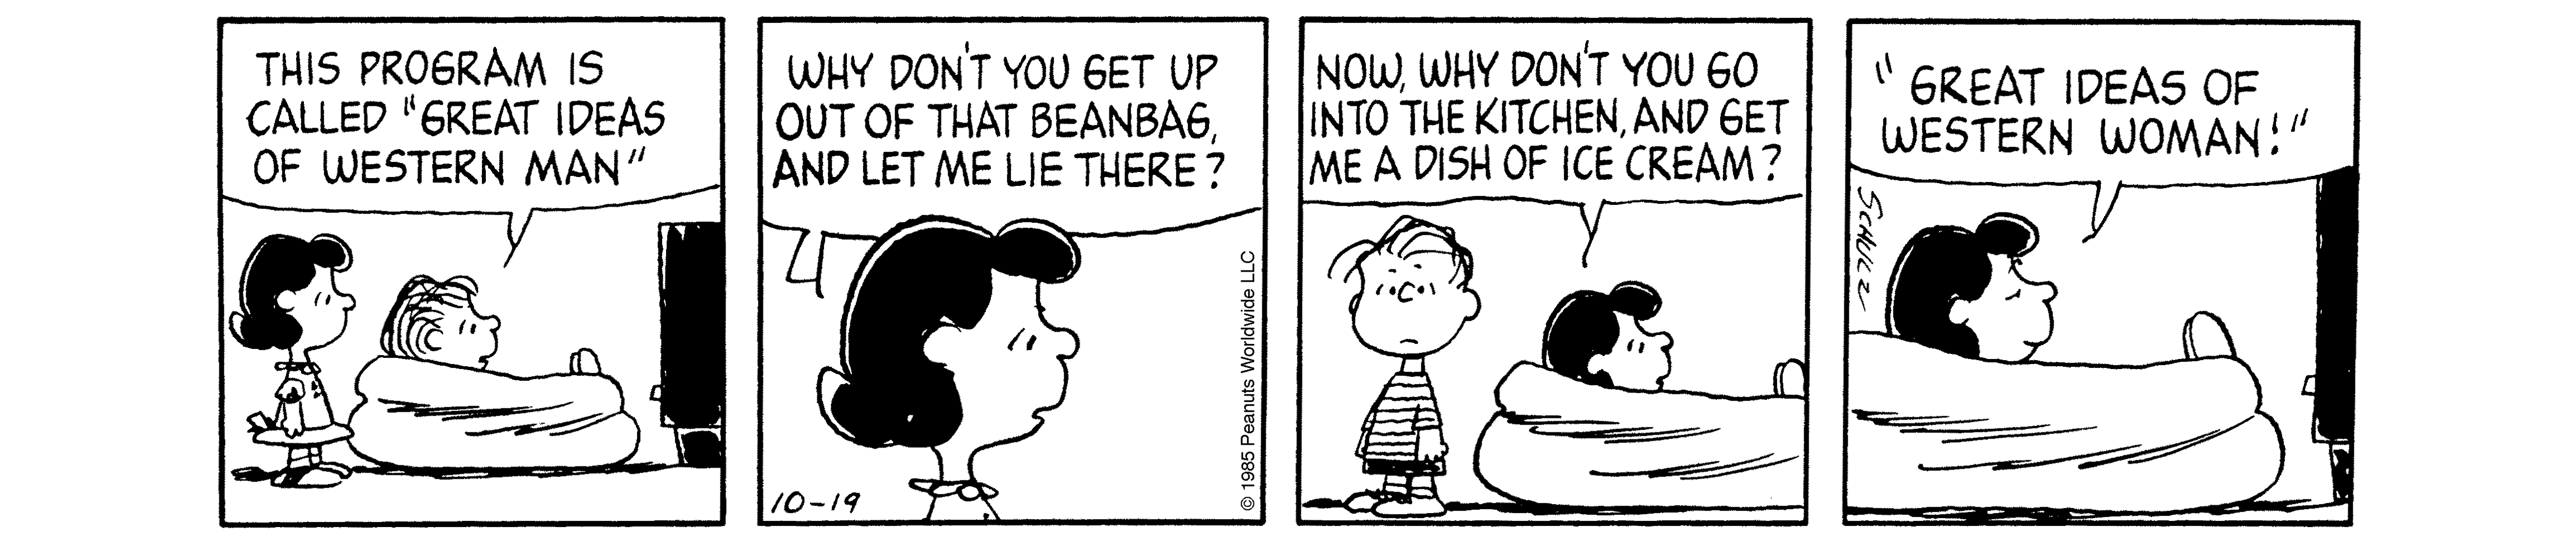 A black and white comic strip of a boy standing beside a girl sitting on couch.